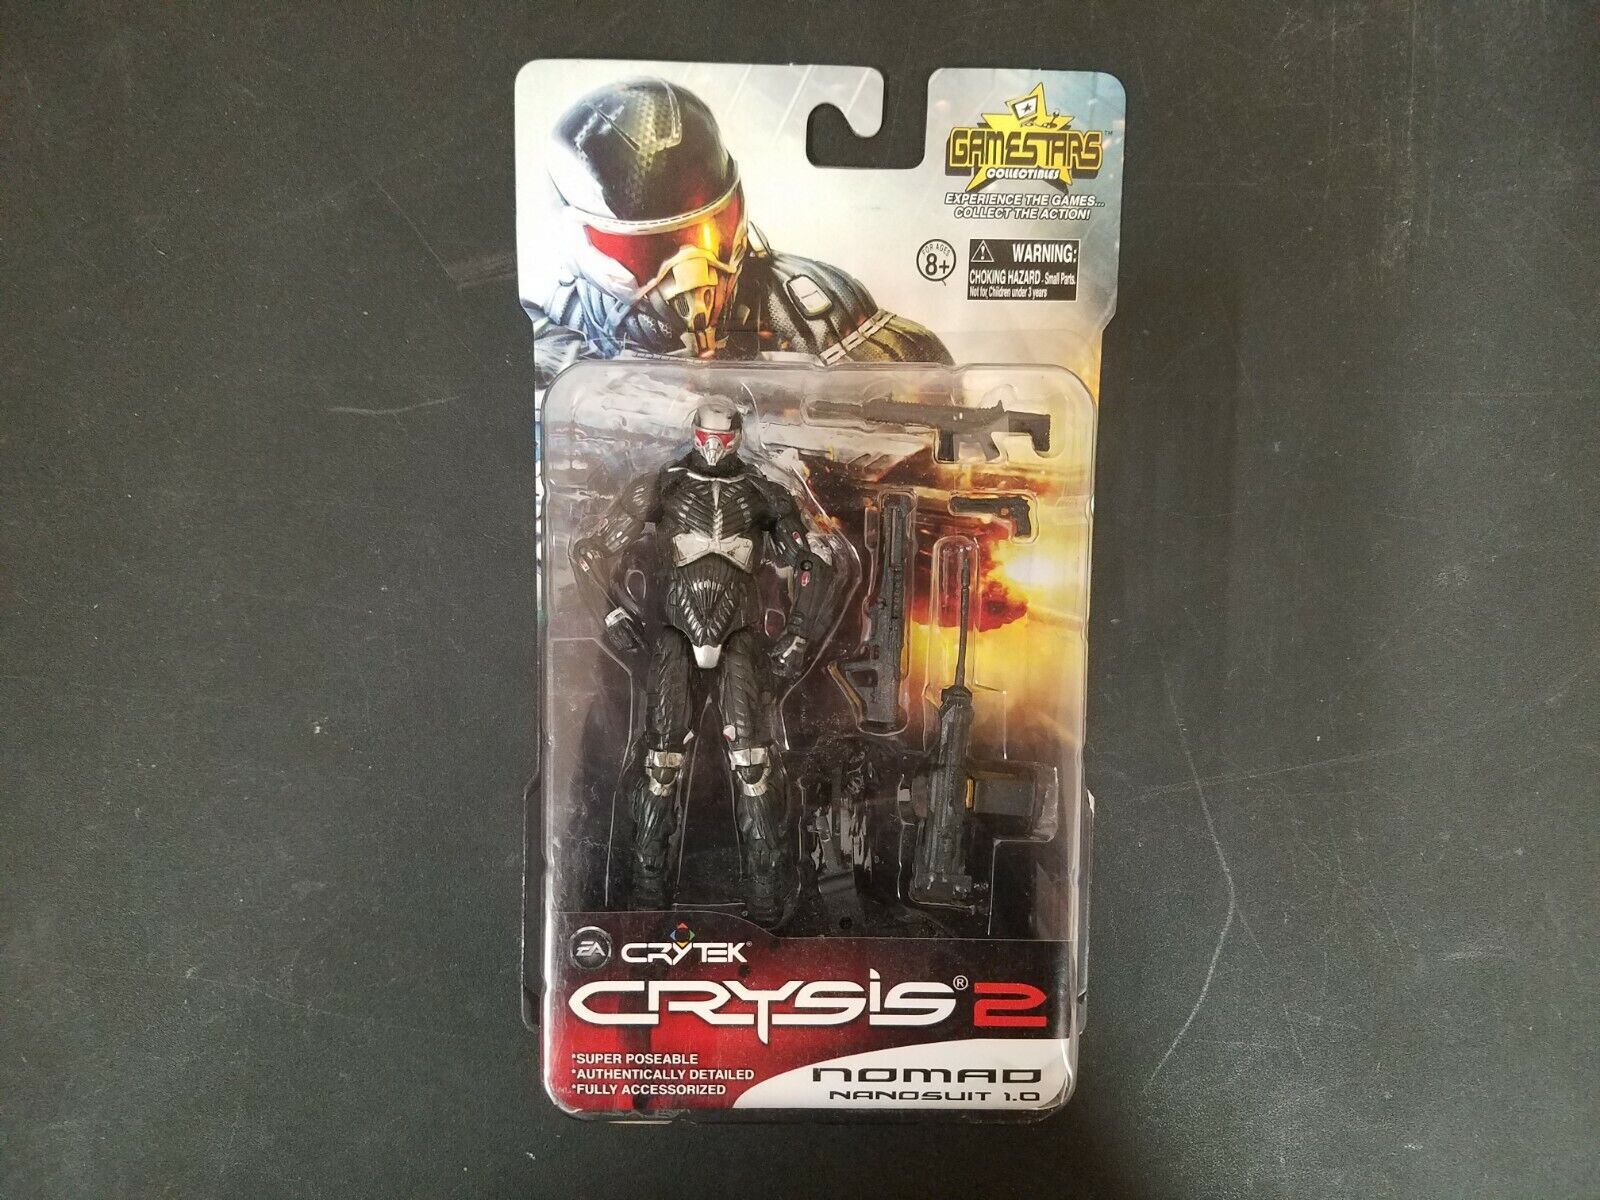 Crysis 2 Nomad nanosuit 1.0 action figure  gamestars Collectibles  EA Crytek 3.75  à la mode